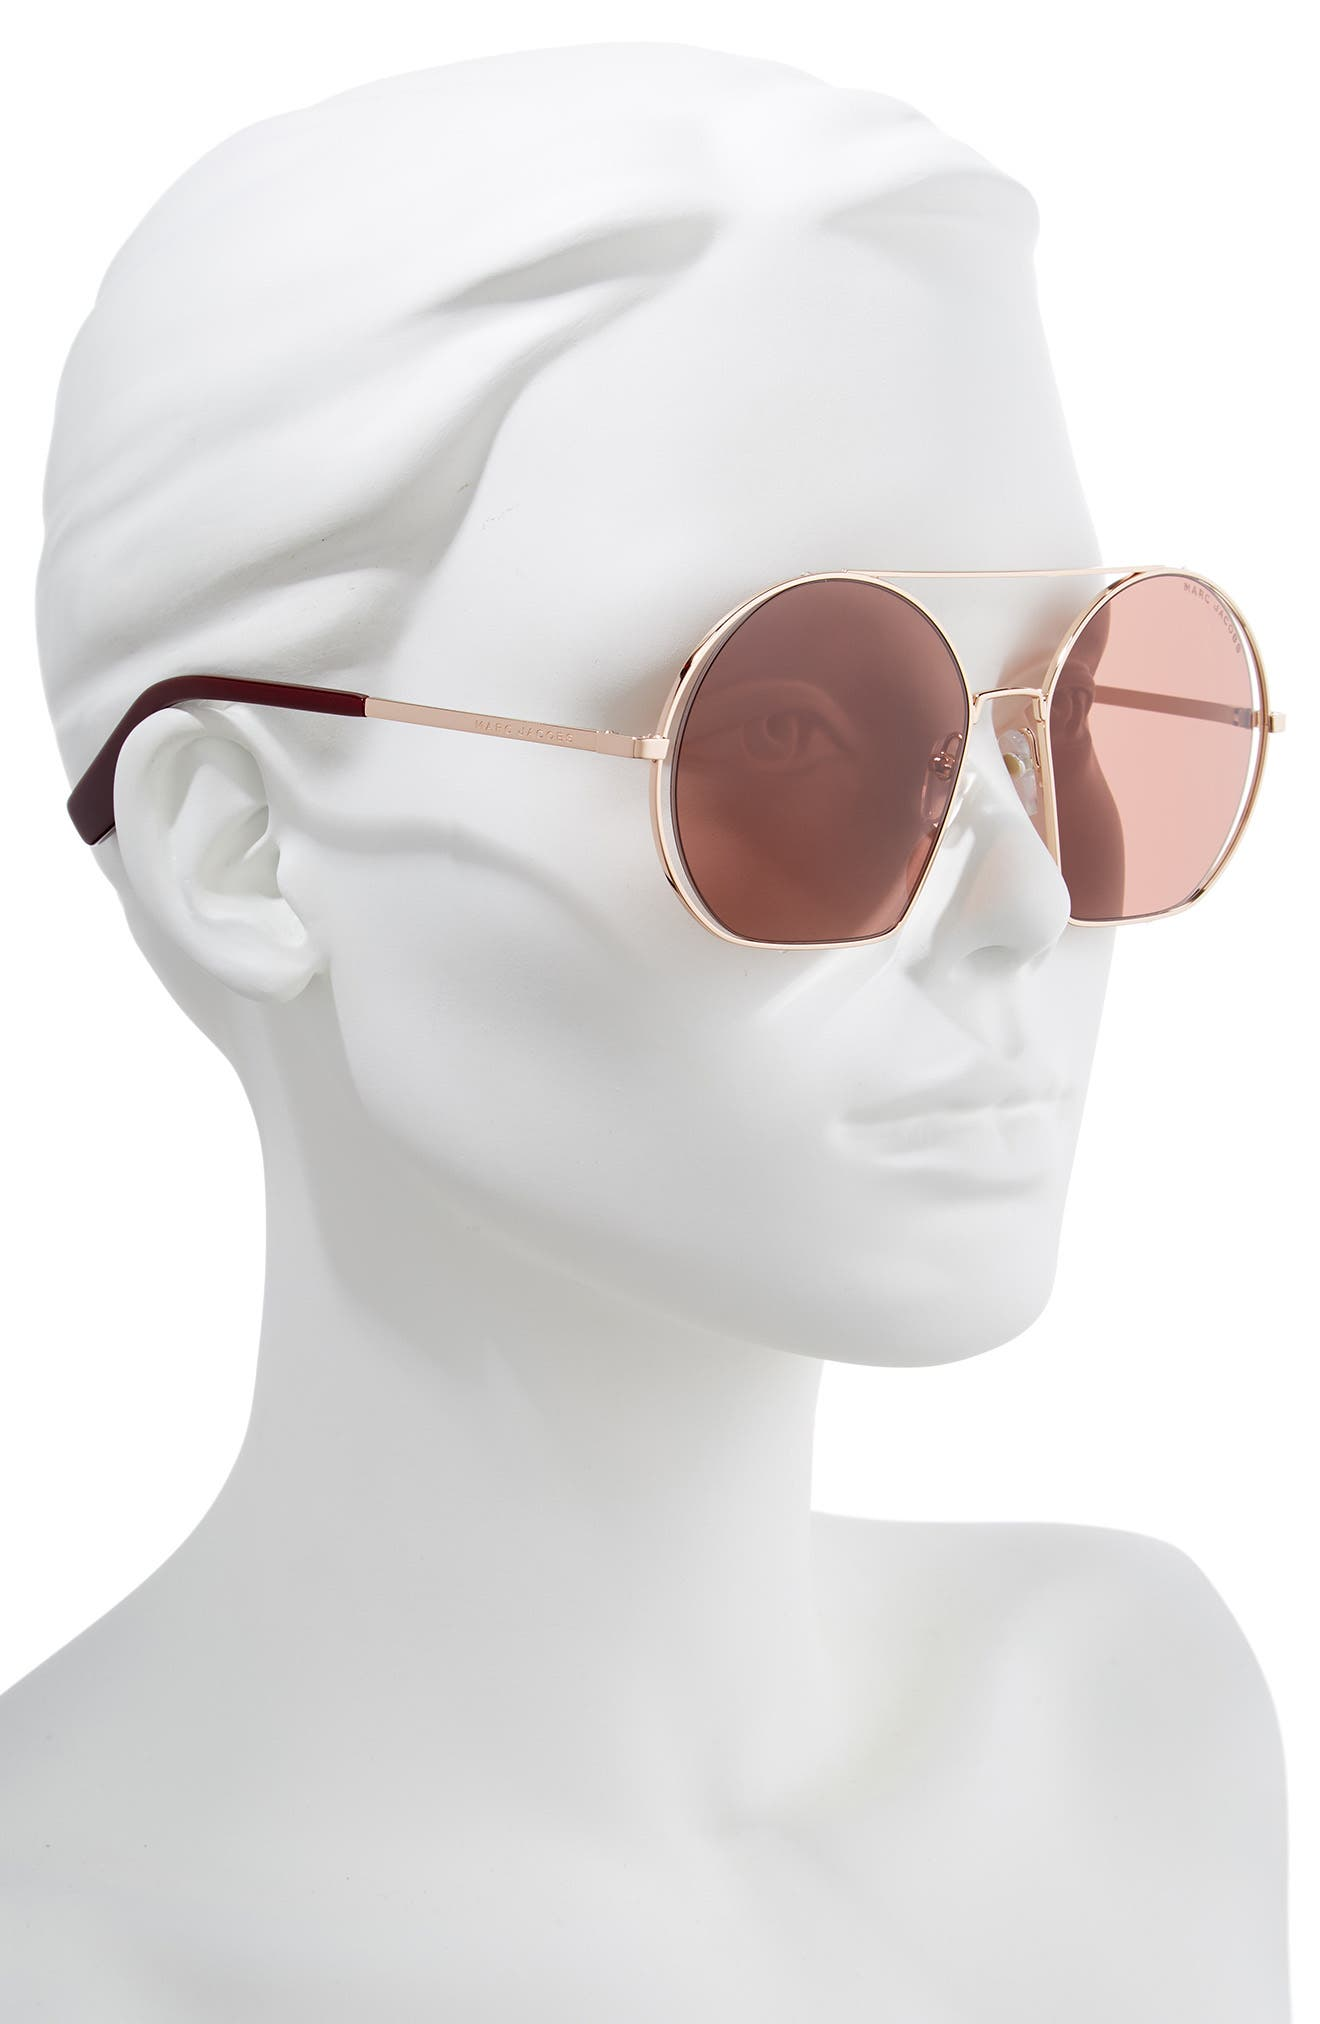 56mm Round Sunglasses,                             Alternate thumbnail 2, color,                             GOLD/ BURGUNDY